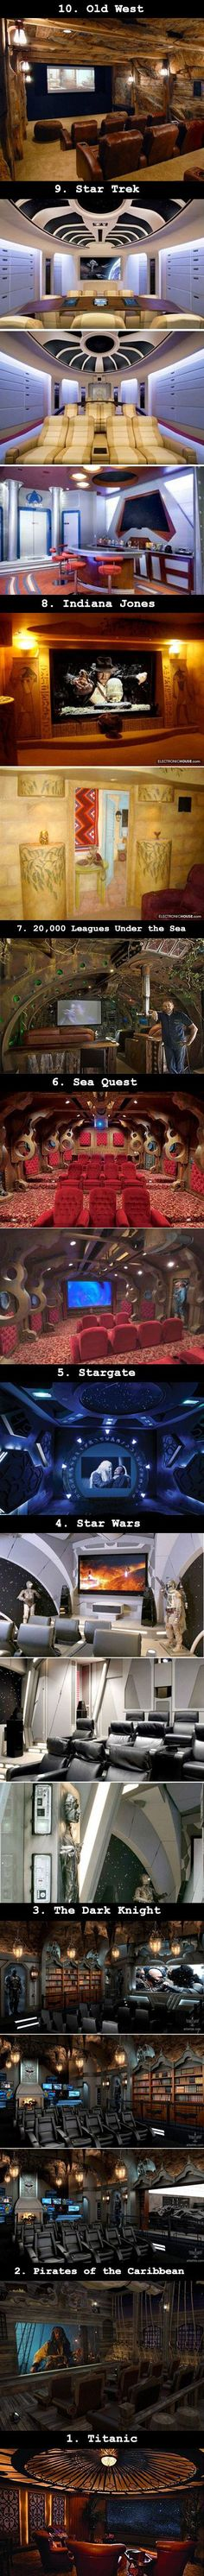 I NEED ALL OF THEM!  (but if I had to pick only one, it'd be Star Trek.) 10 Mind-Blowing Home Theaters That Dreams Are Made Of